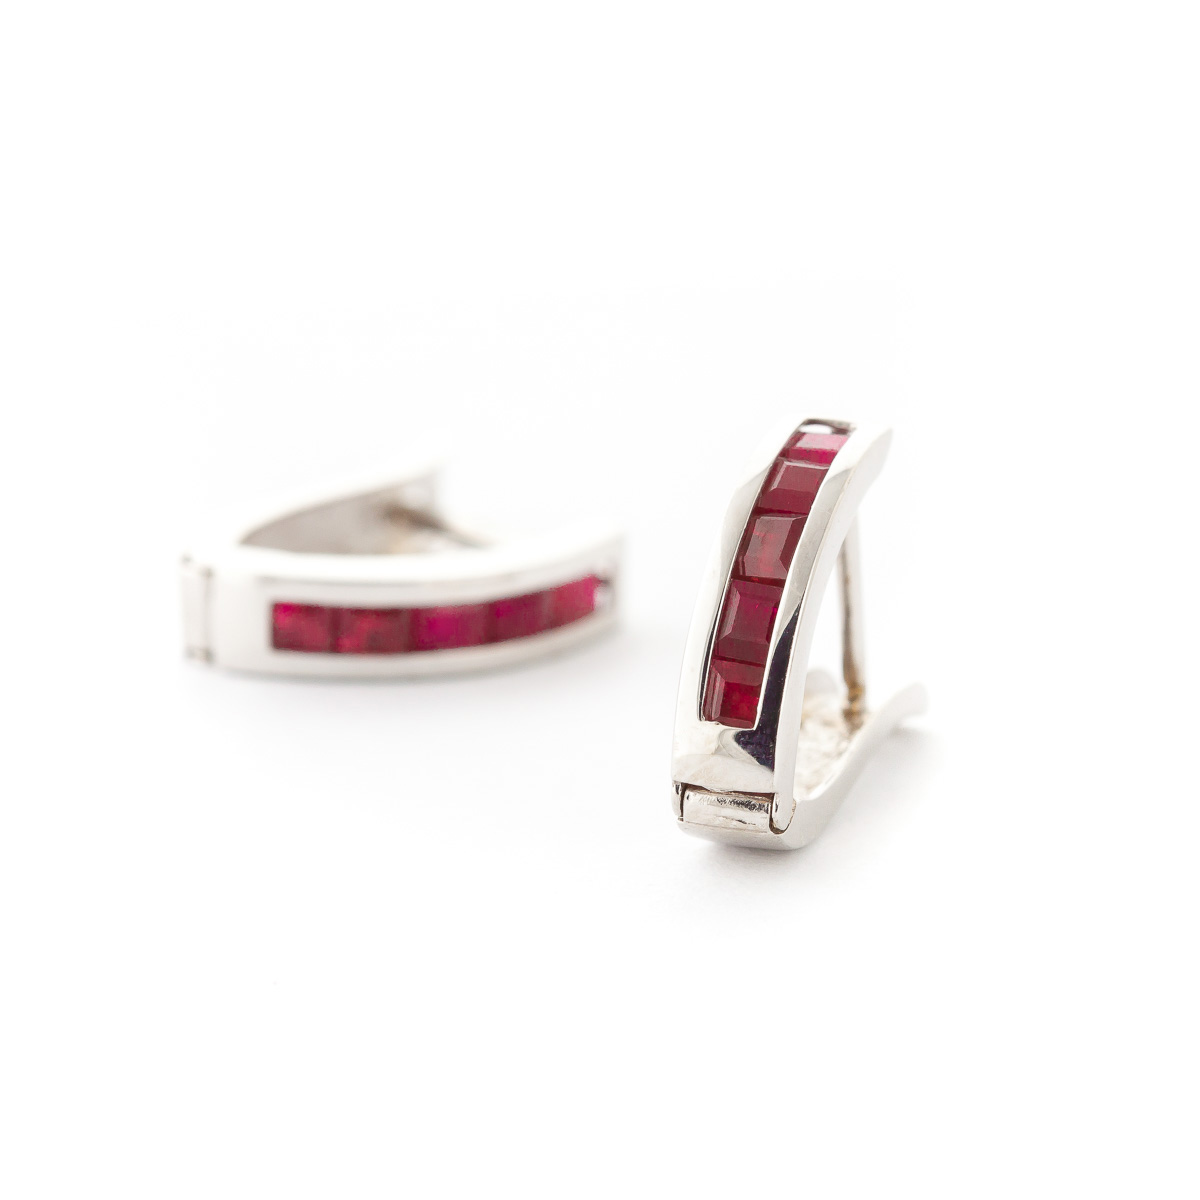 Ruby Acute Huggie Earrings 1.3ctw in 9ct White Gold